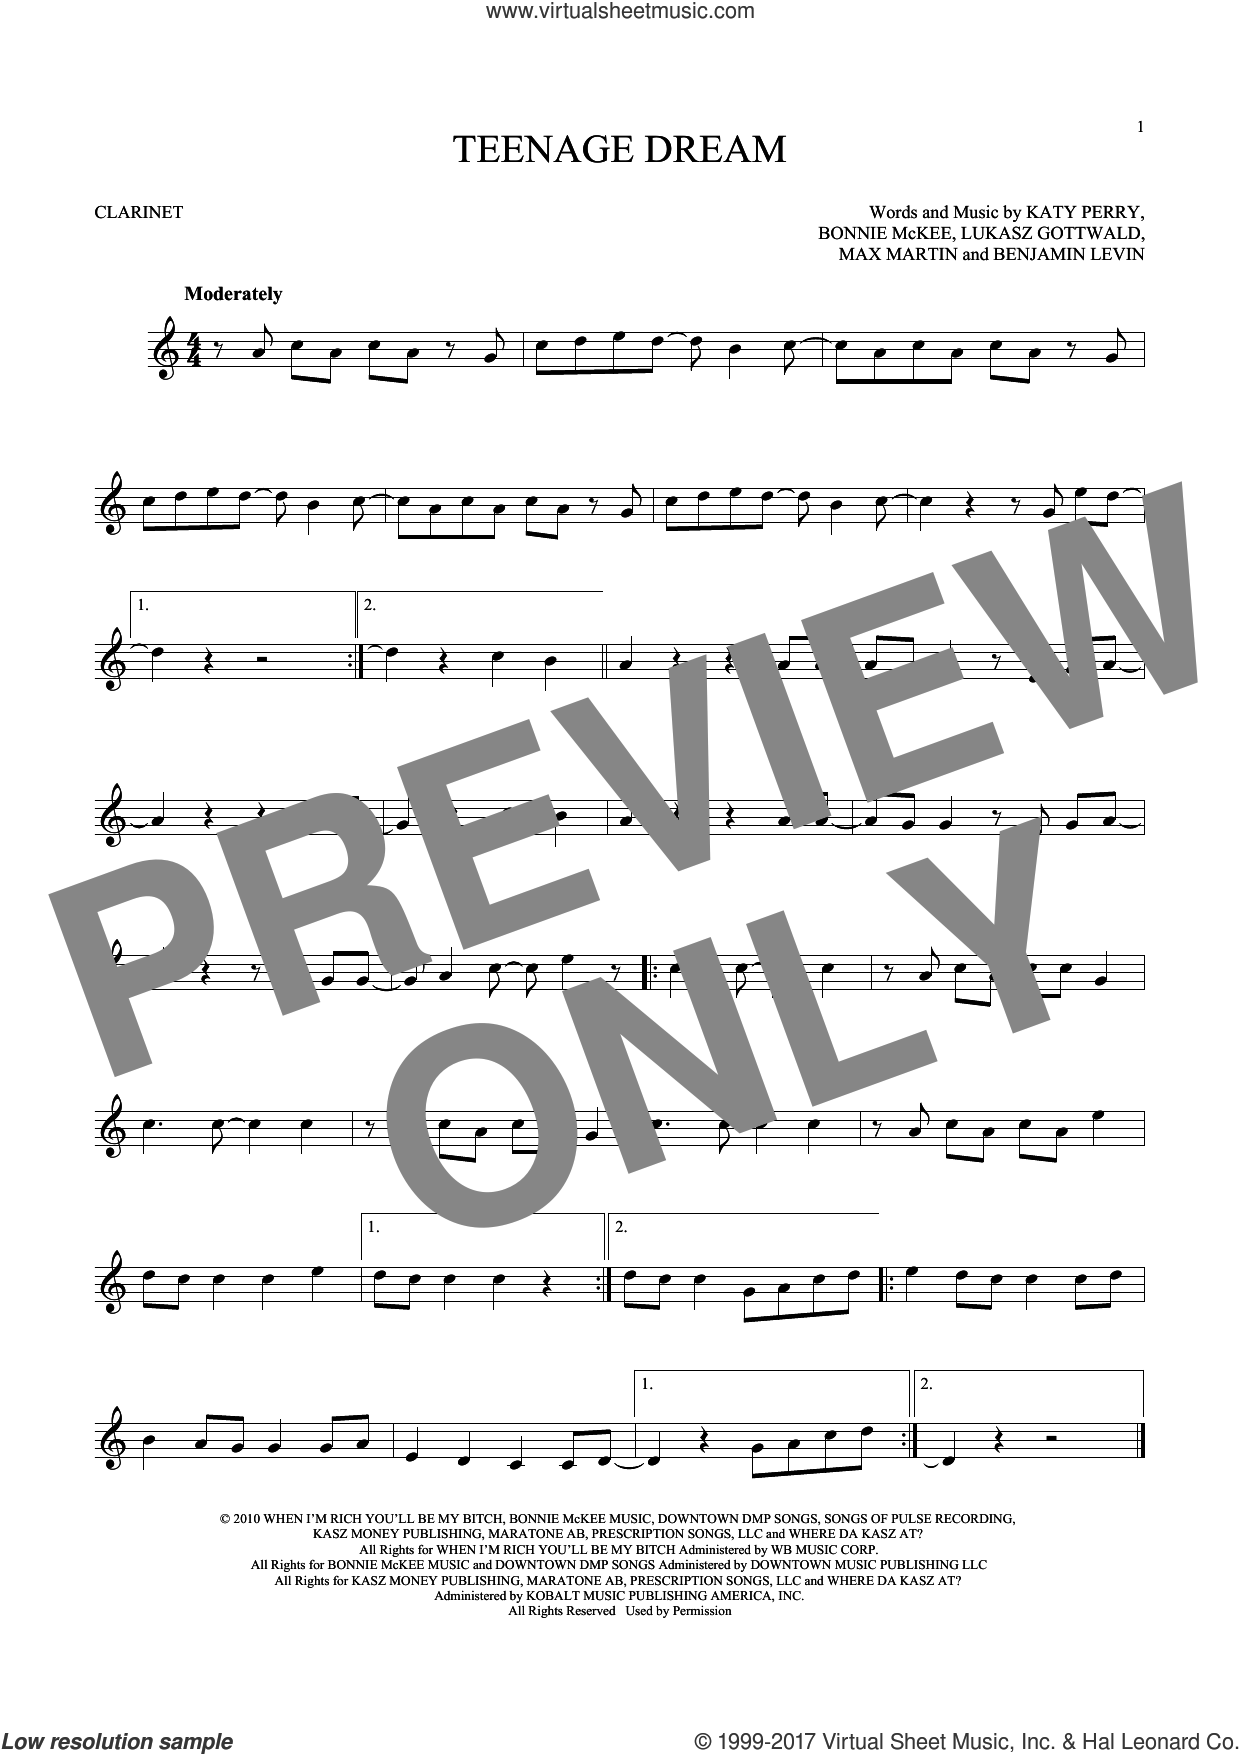 Teenage Dream sheet music for clarinet solo by Katy Perry, Benjamin Levin, Bonnie McKee, Lukasz Gottwald and Max Martin, intermediate skill level